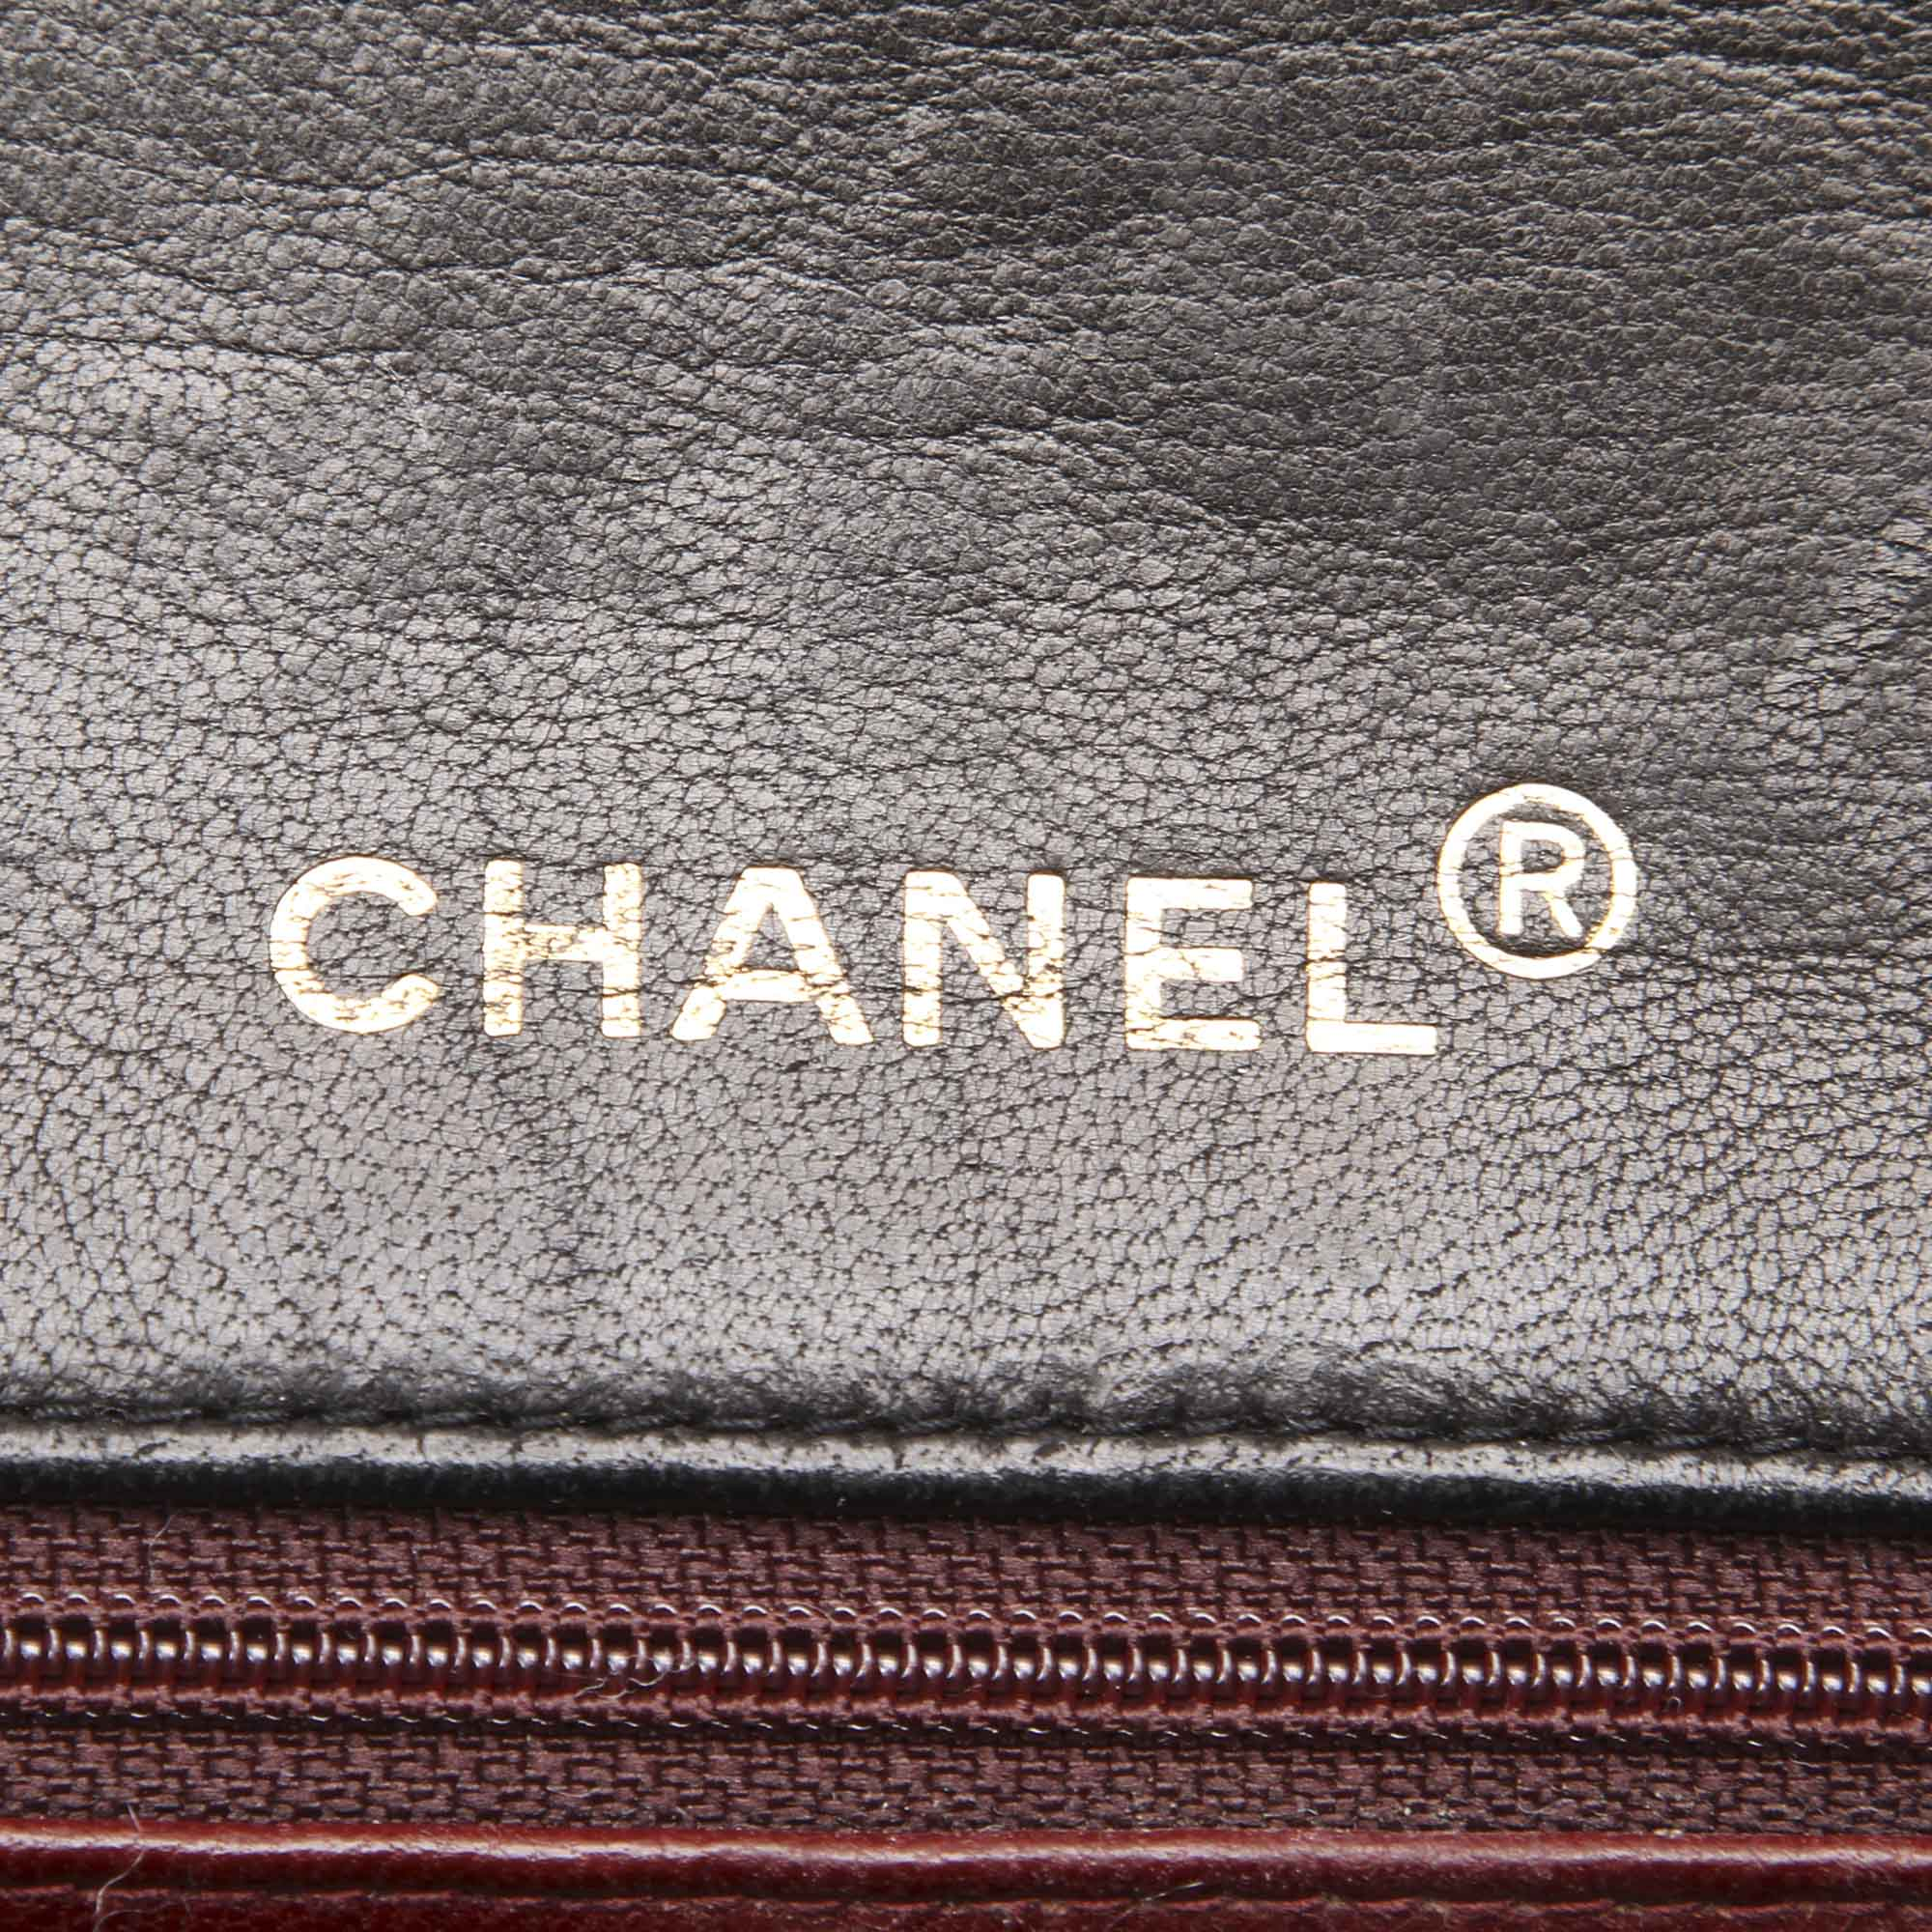 Chanel Extra Mini bag - Iconics Preloved Luxury